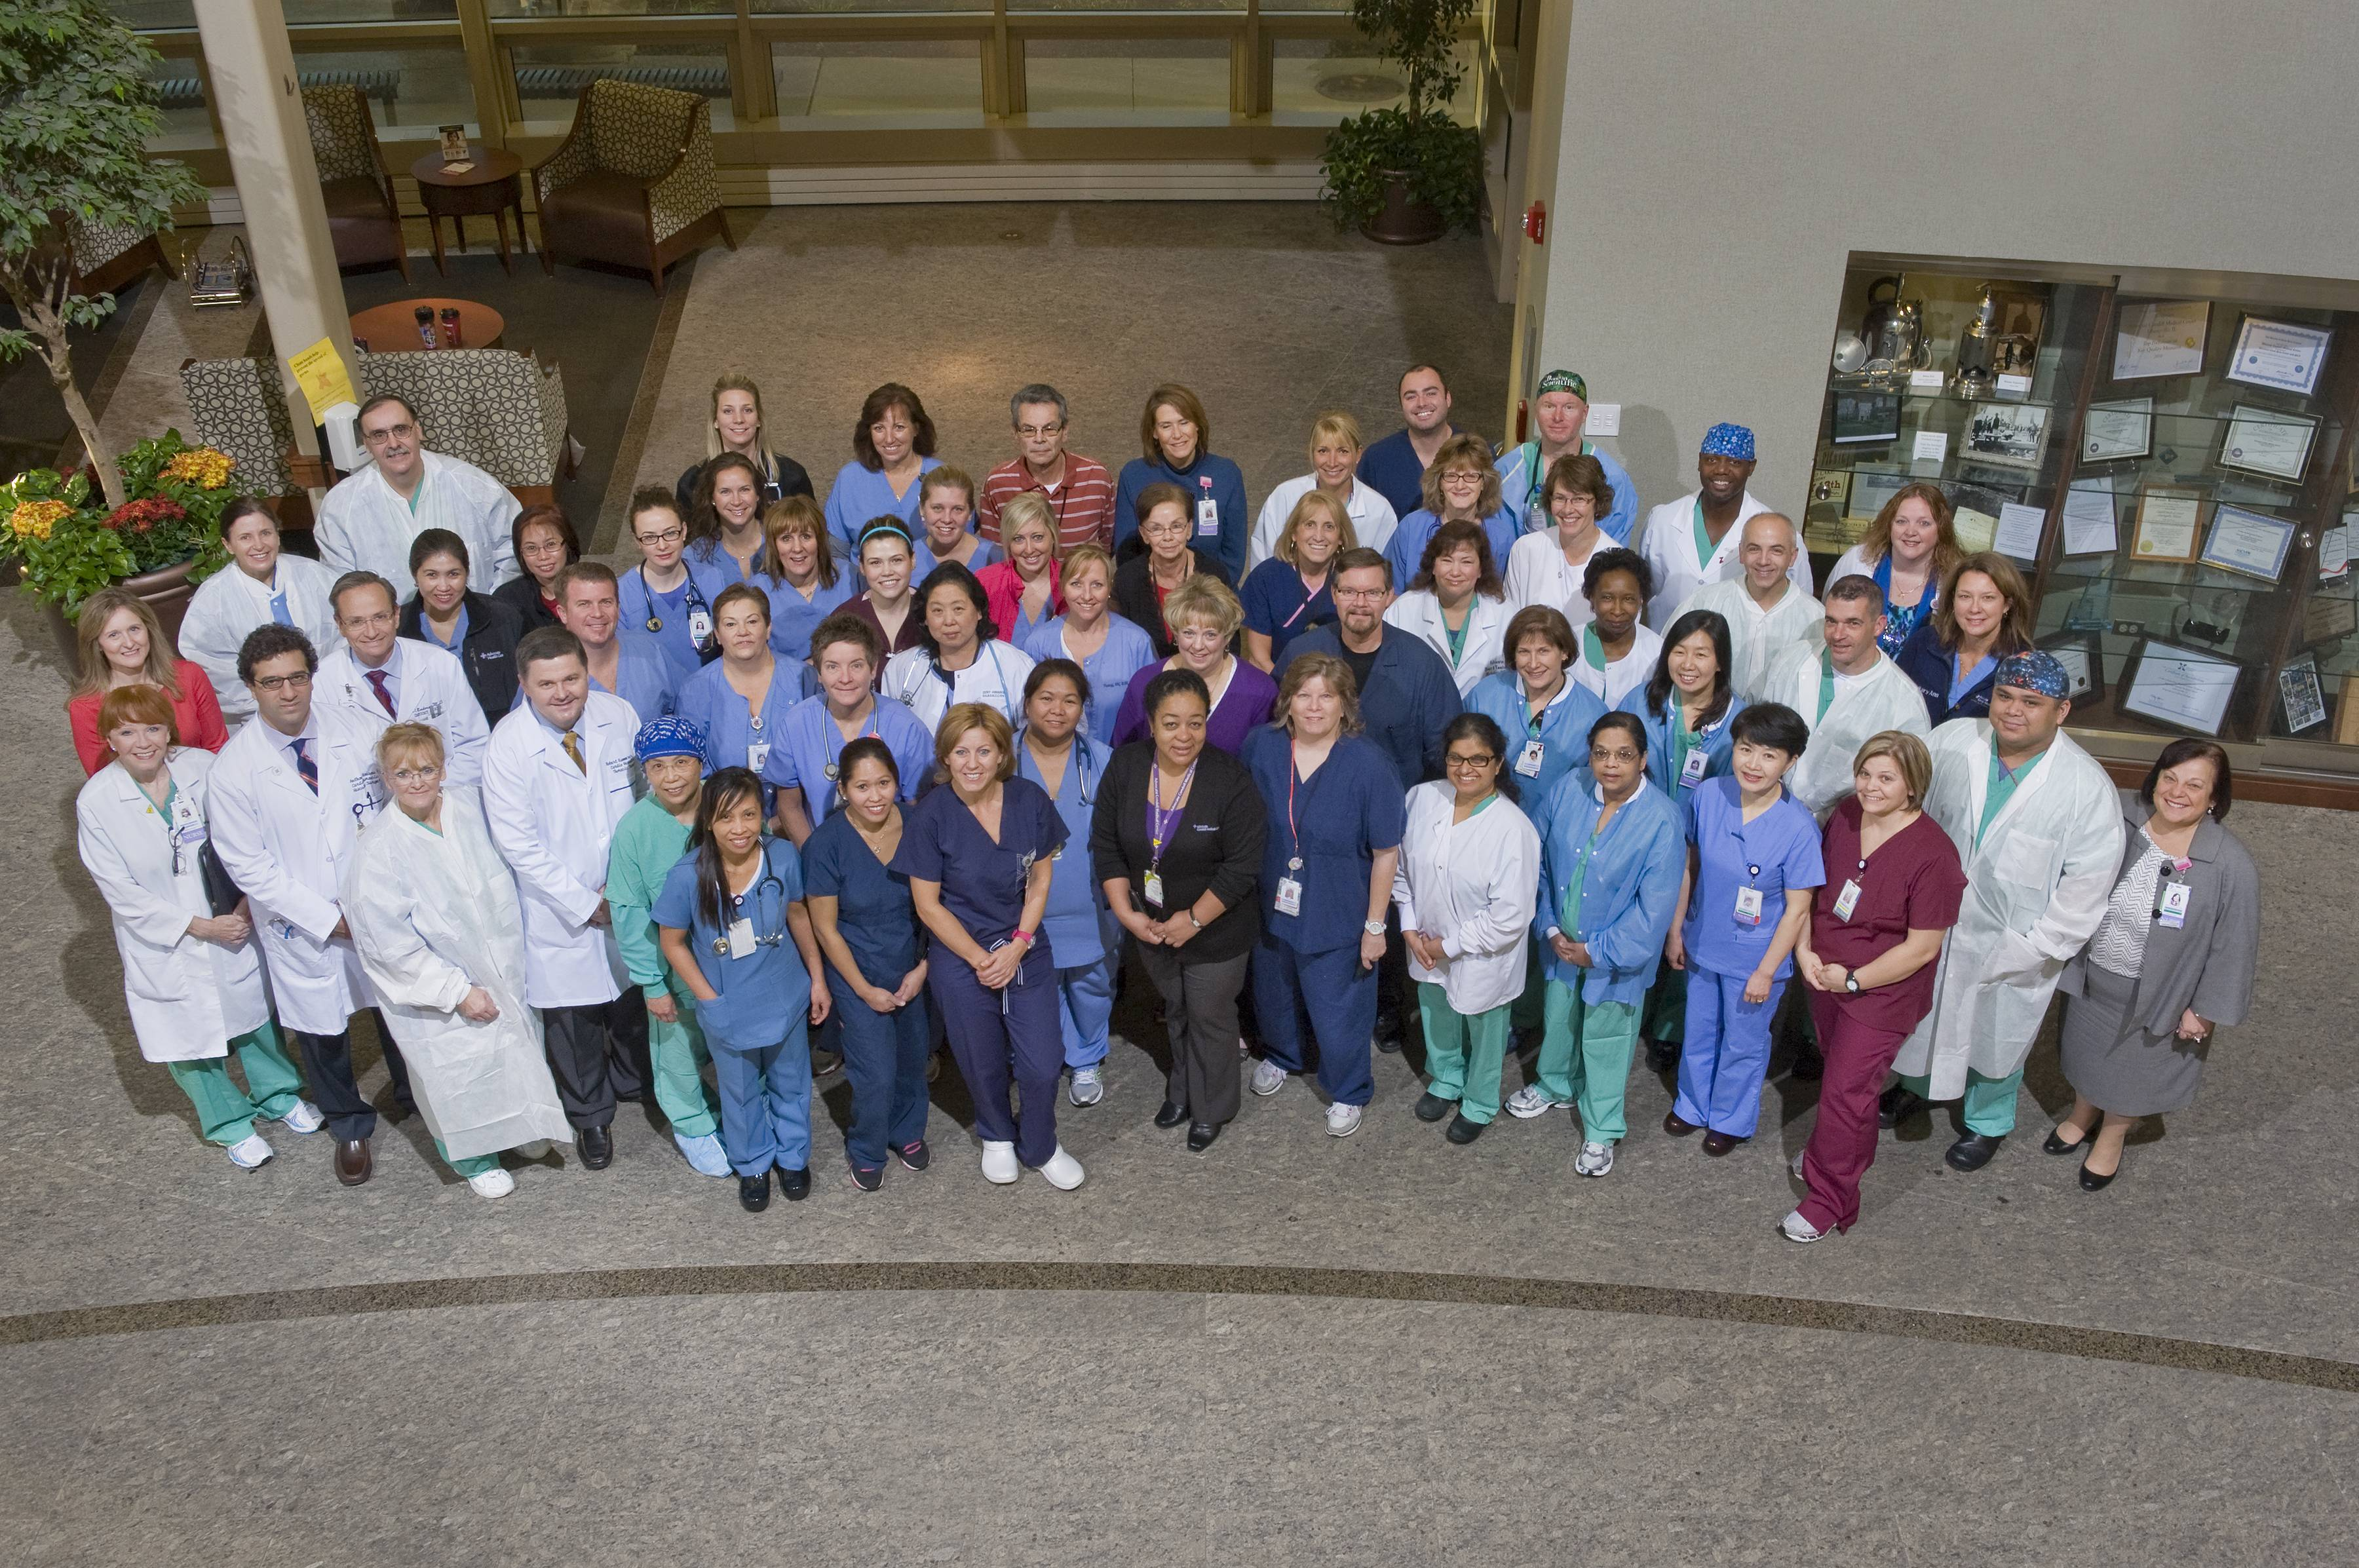 The Advocate Condell Heart & Vascular Institute Team